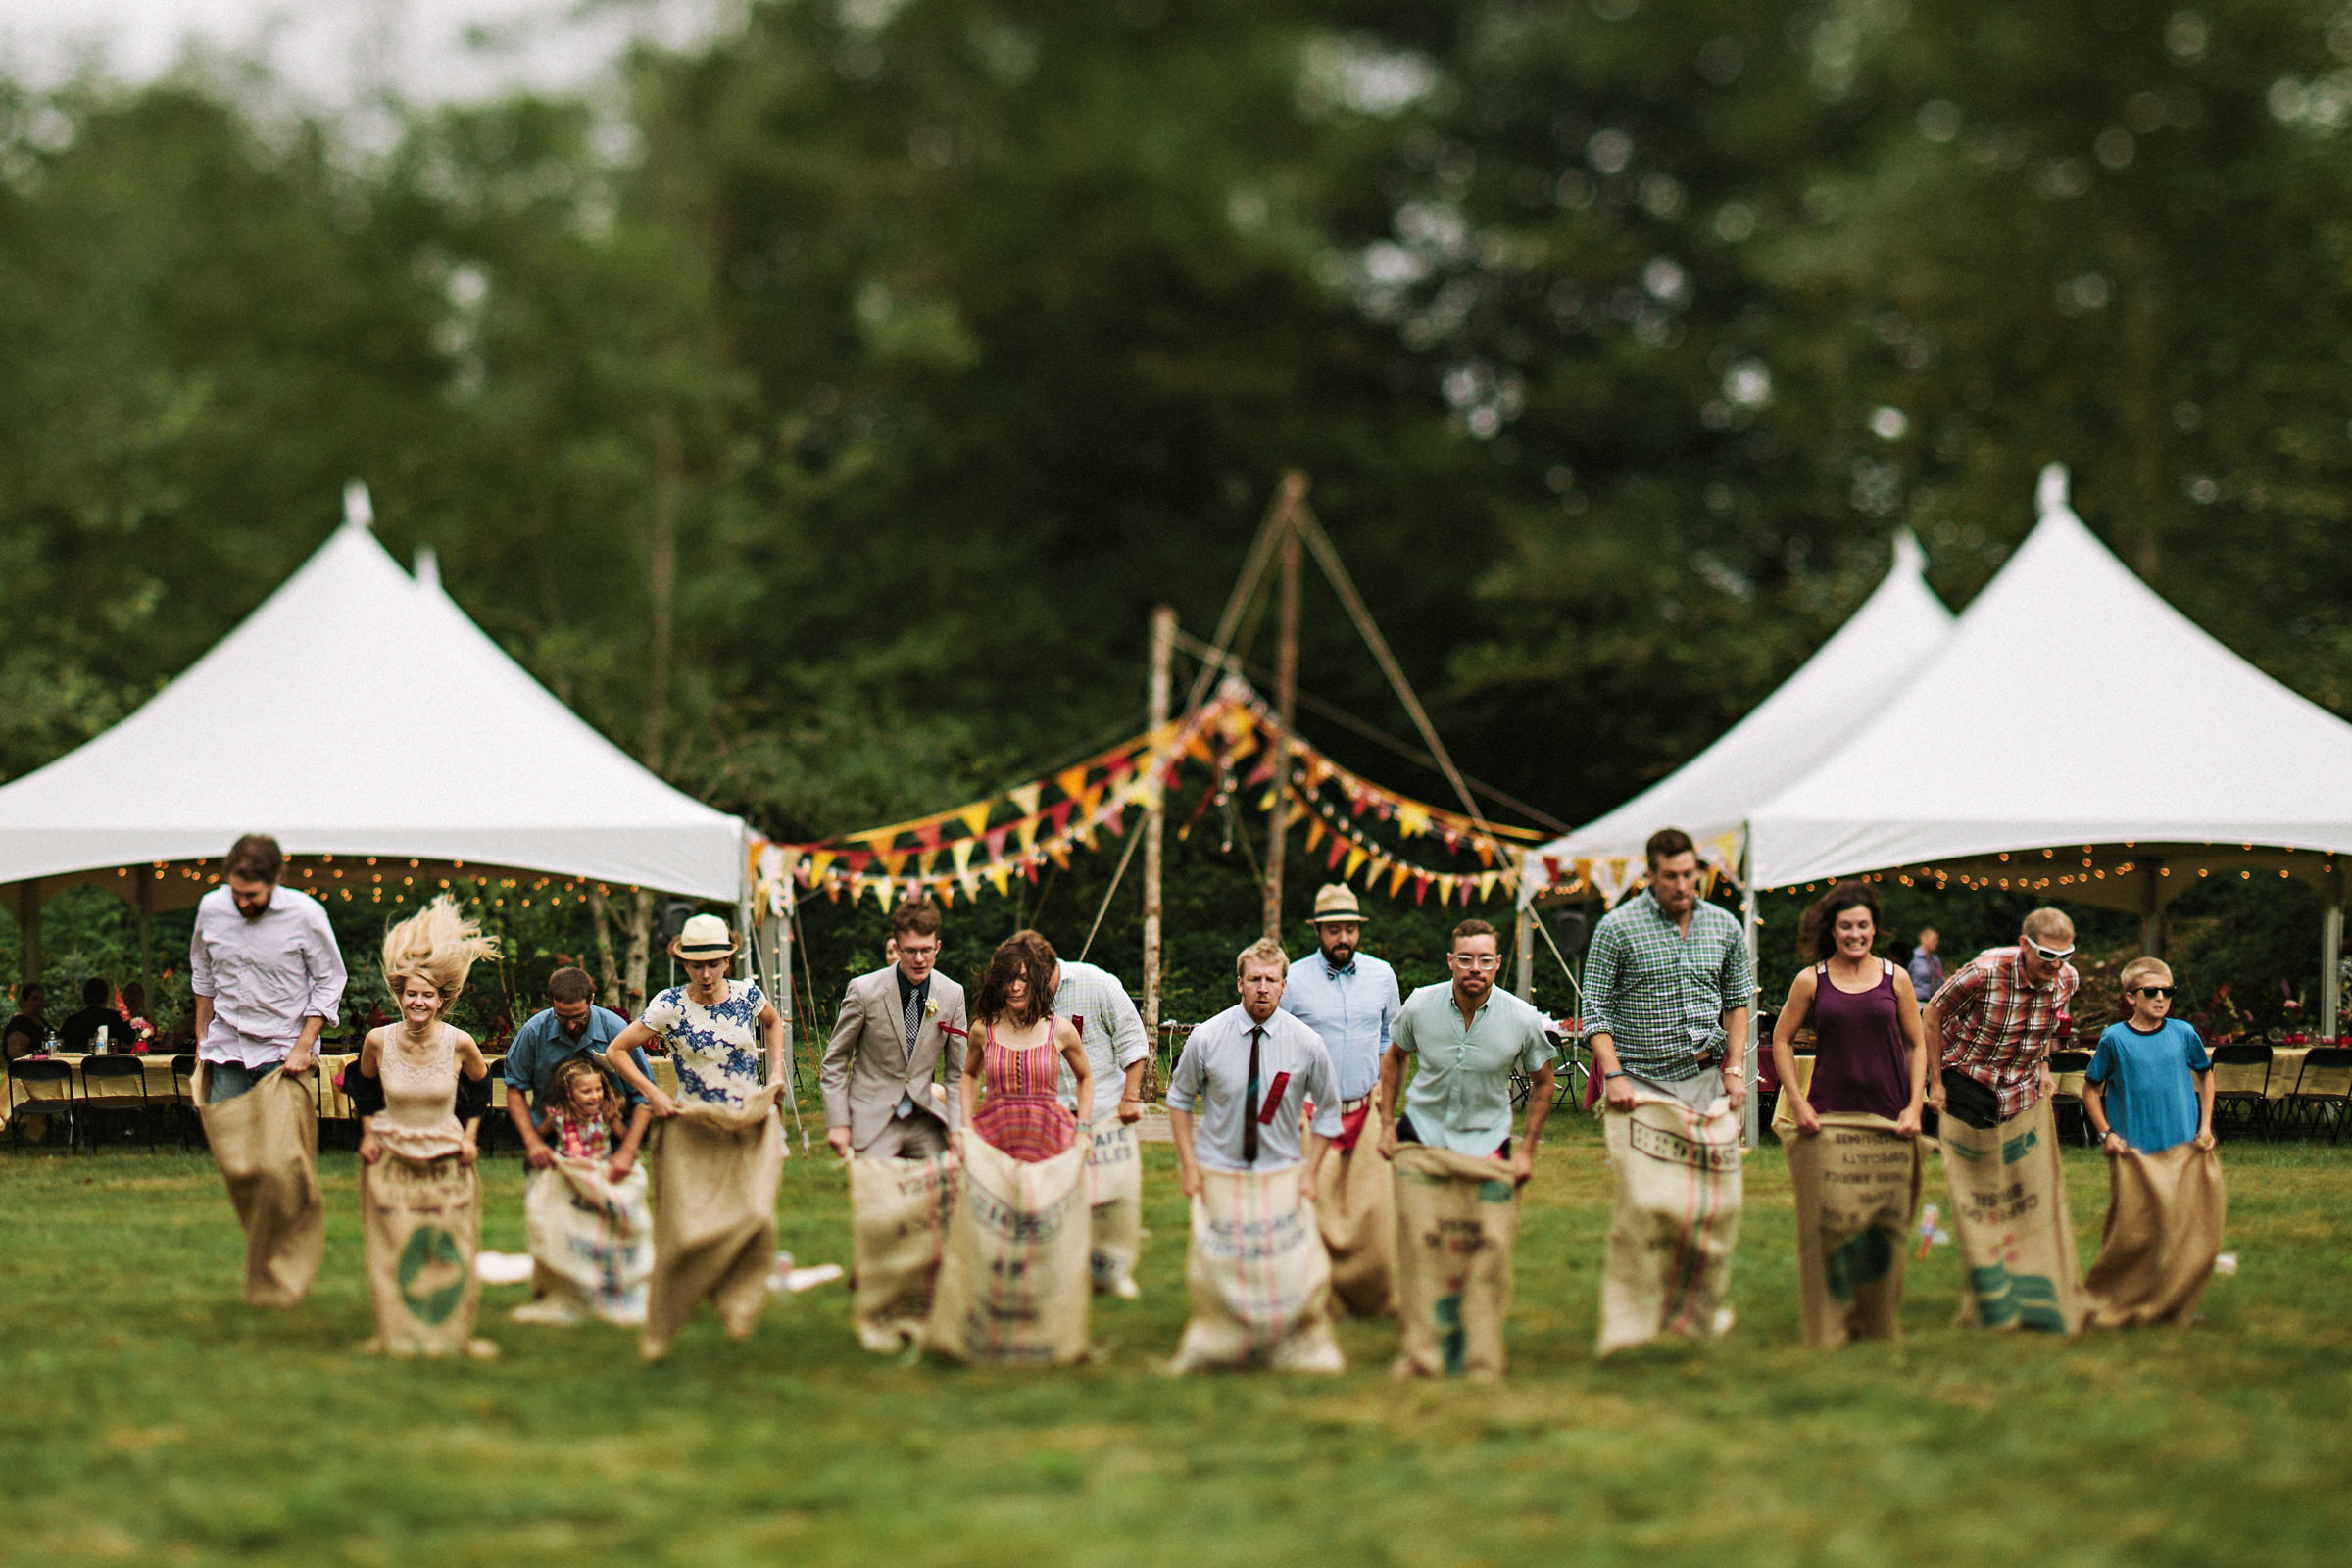 Fun group shot sack race amid outdoor tents and colorful bunting - photo by Jonas Seaman Photography